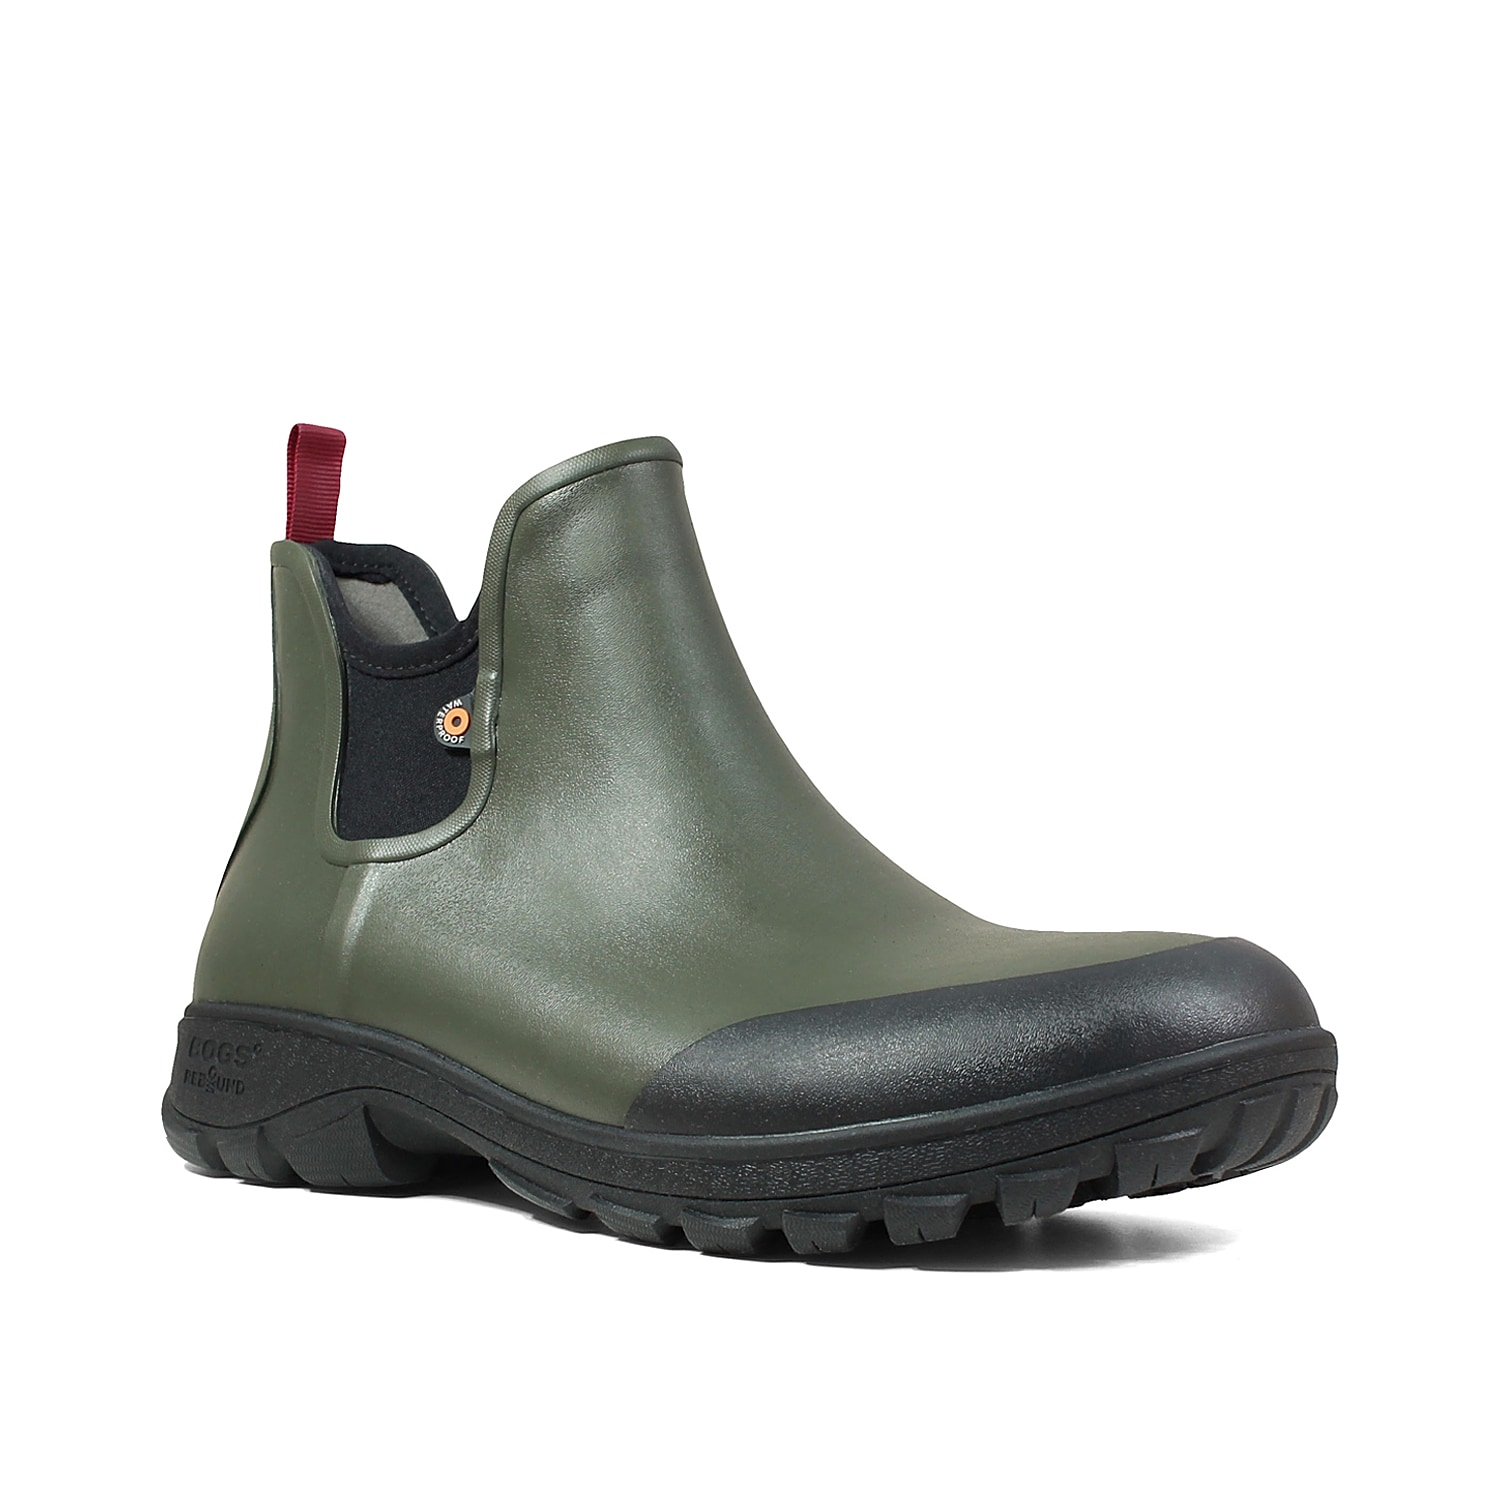 Whether you are doing yard work or running errands in the rain the Suavie boot from Bogs will be perfect for you. The waterproof rubber and slip-resistant sole will keep you feeling steady and durable, no matter the activity!